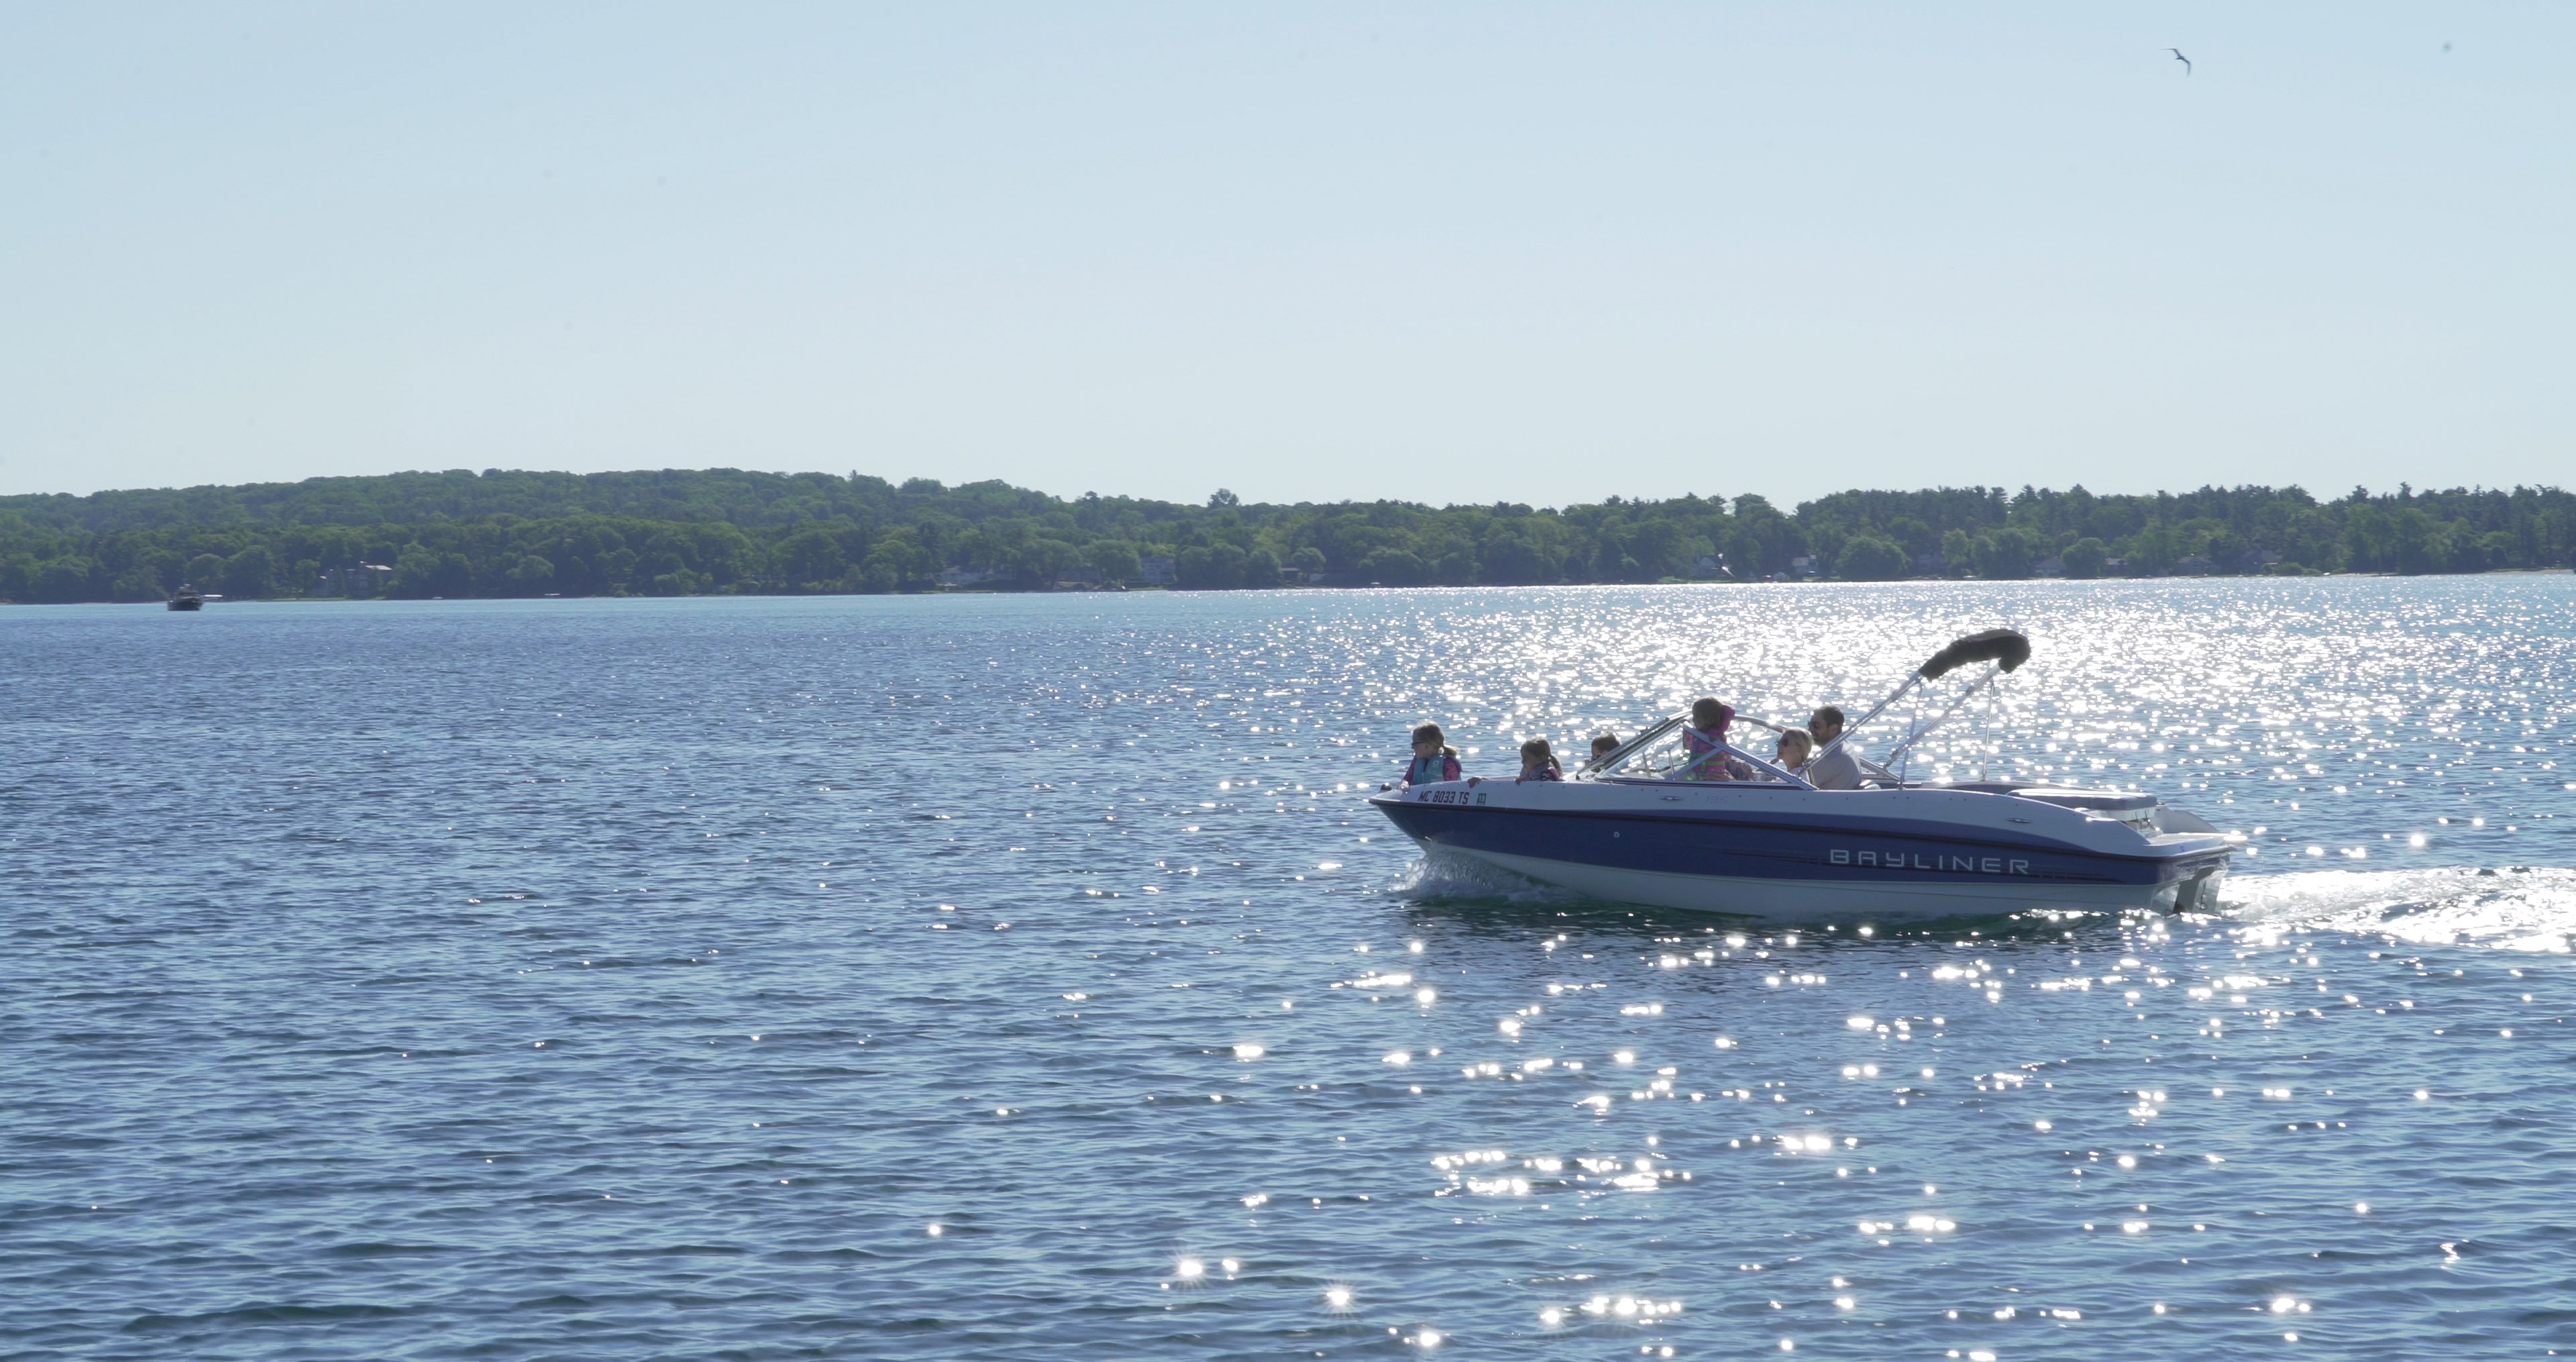 Family cruising in a speedboat